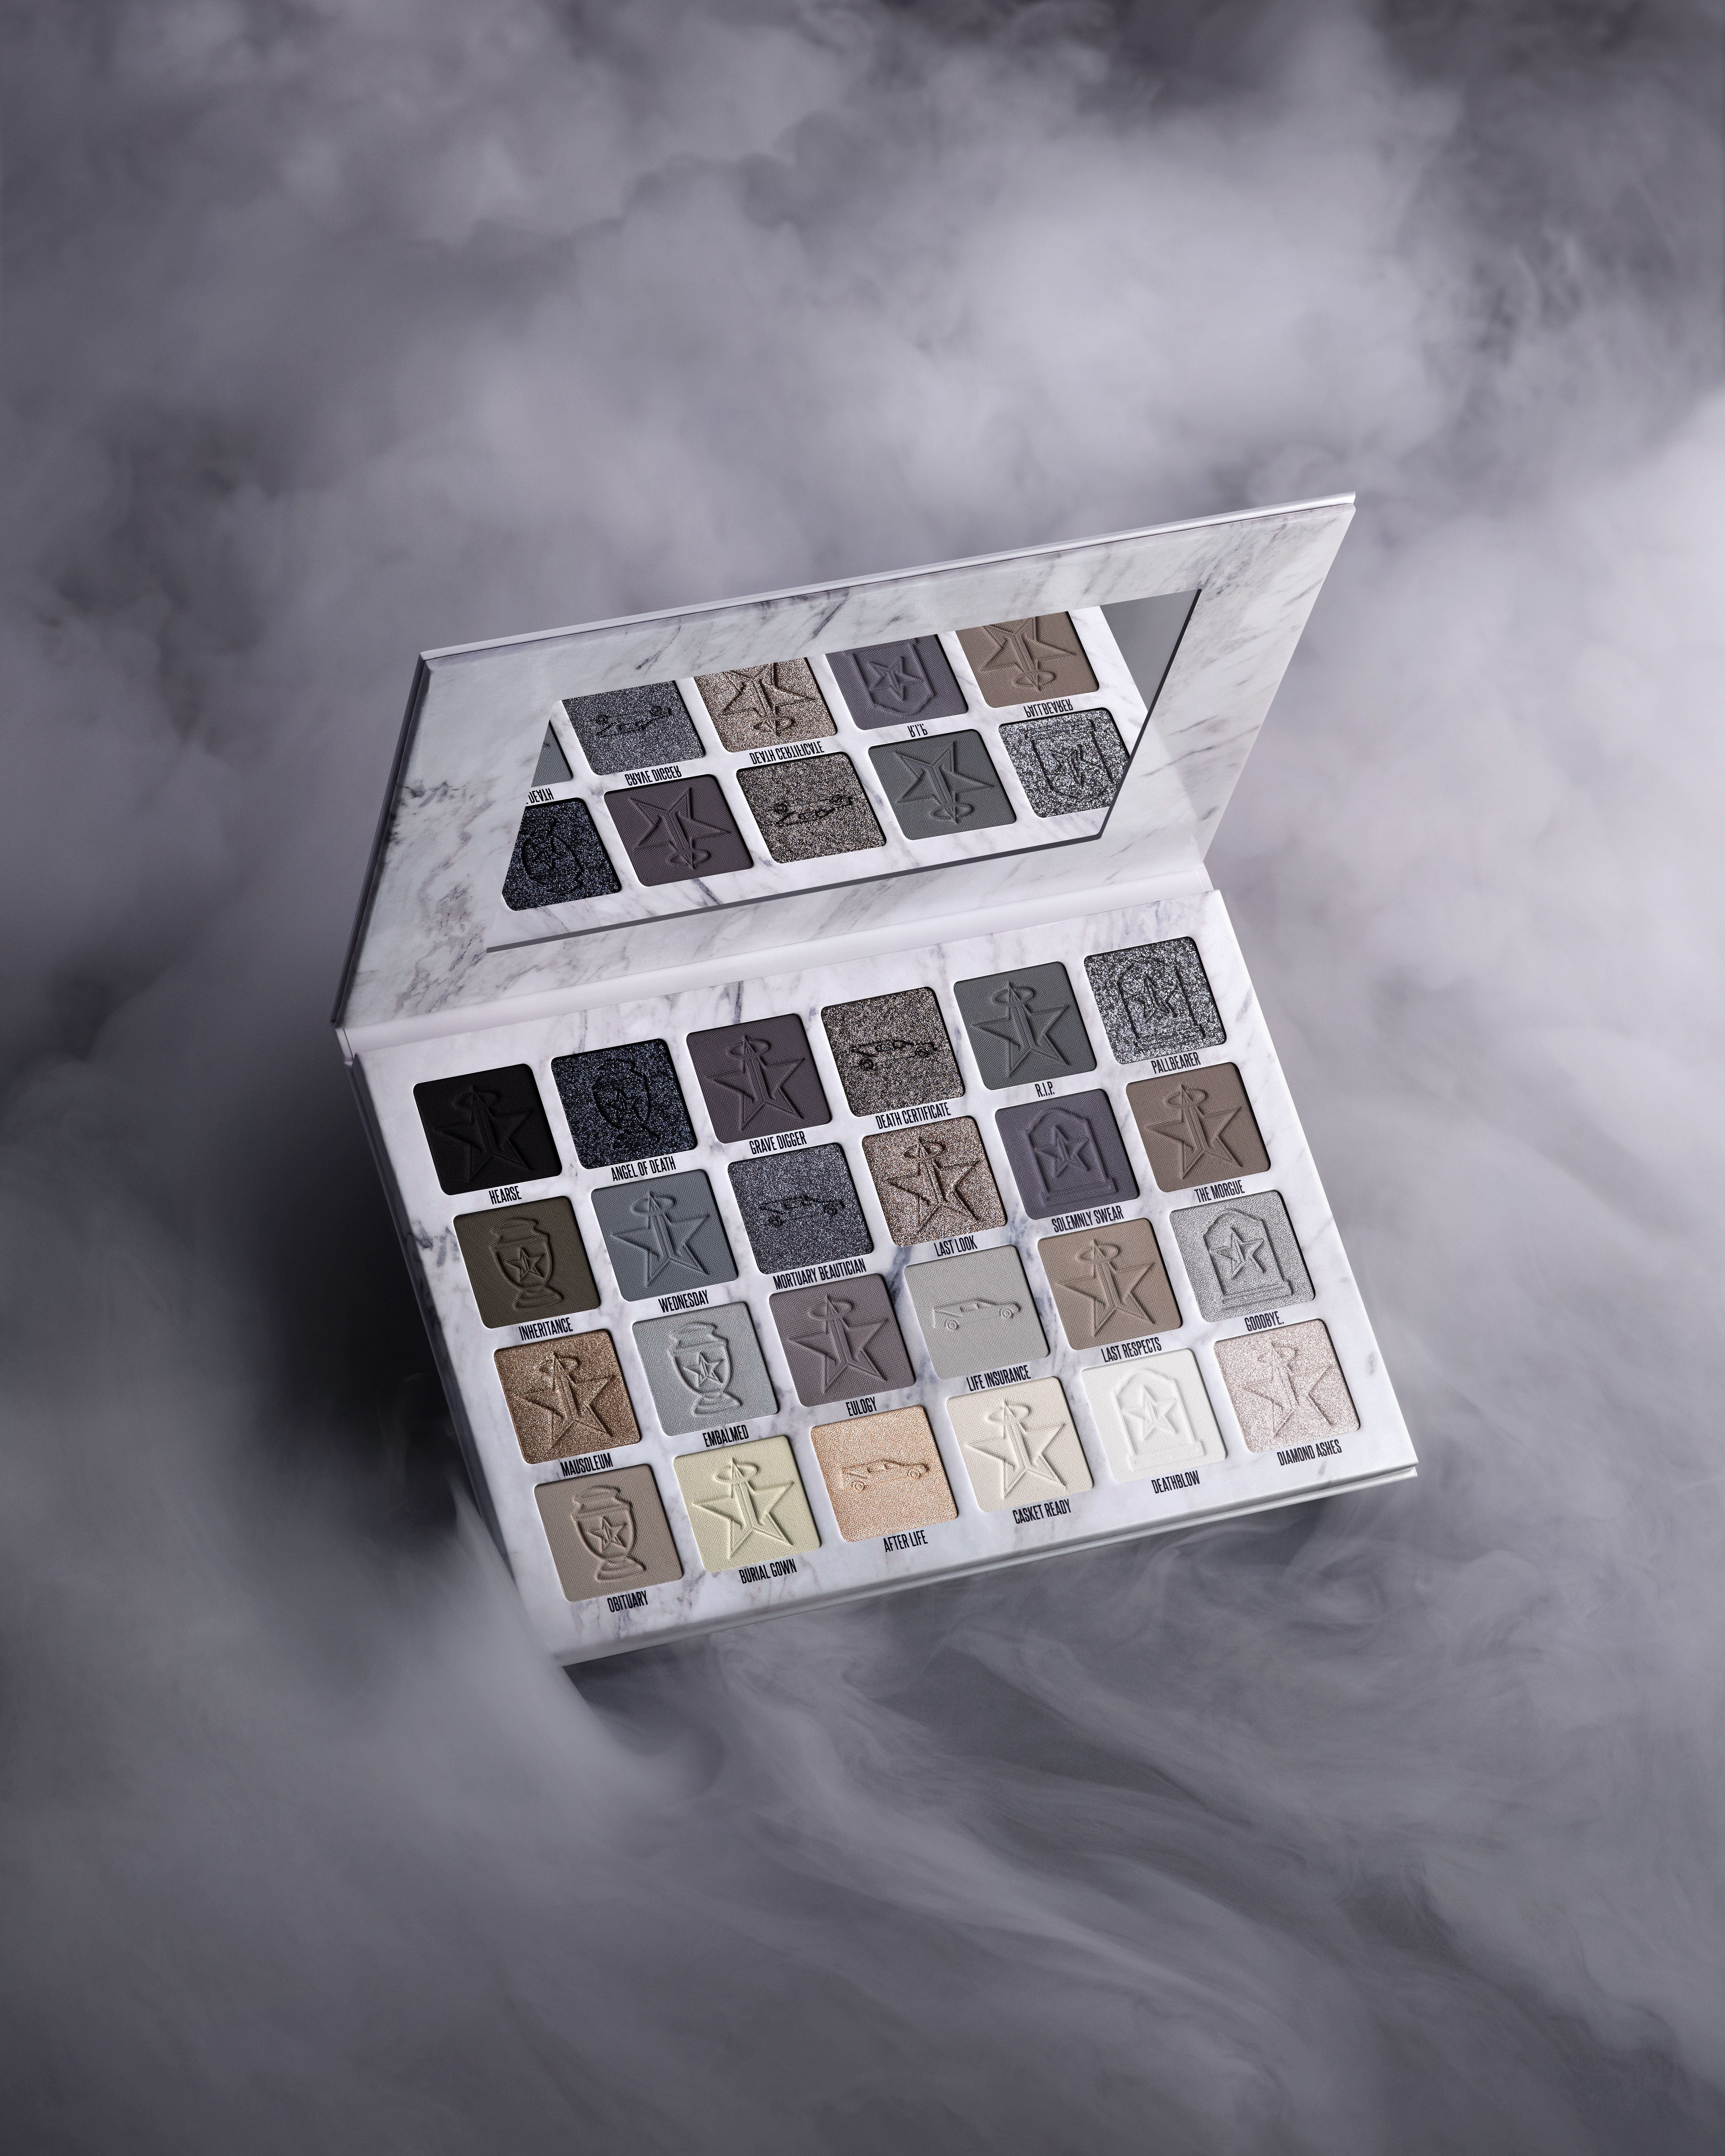 Alternate product image for Cremated Eyeshadow Palette shown with the description.